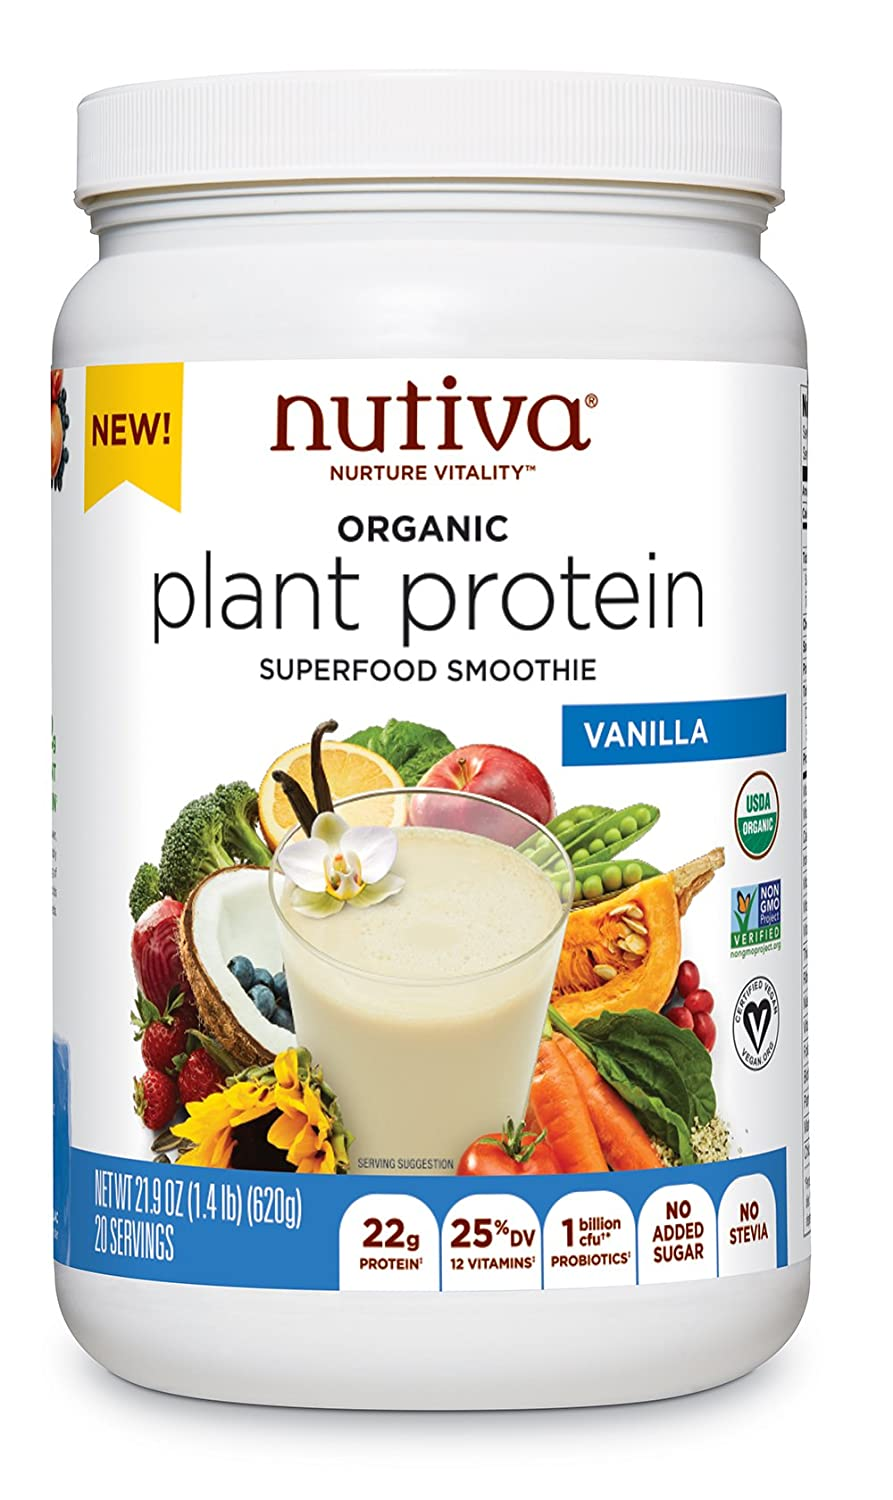 Nutiva Plant Protein Superfood for Shakes and Smoothies, Vanilla, 1.4-pound